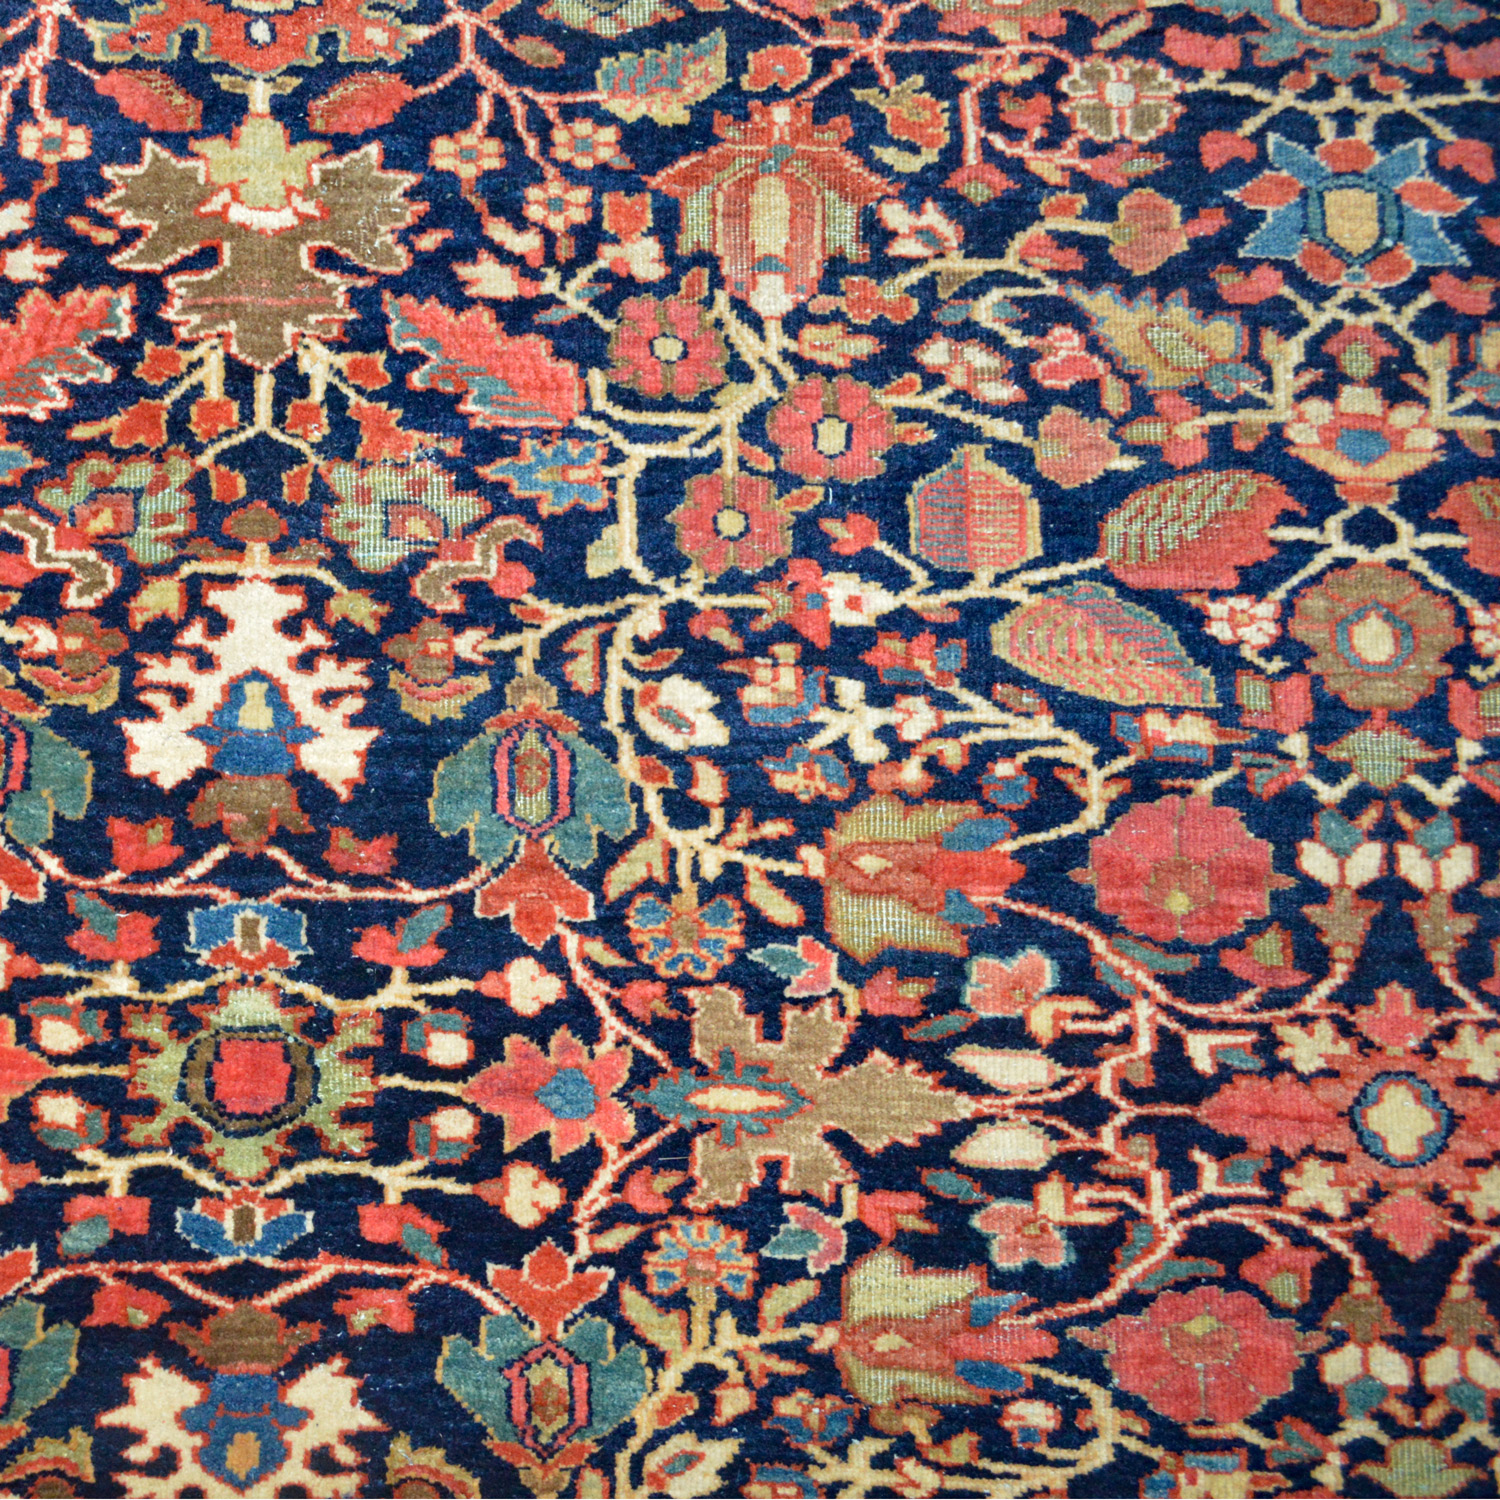 An over size antique Fereghan Sarouk carpet with an all-over design on a navy blue field - Douglas Stock Gallery, antique Persian carpets, Boston,MA area, antique Oriental rugs